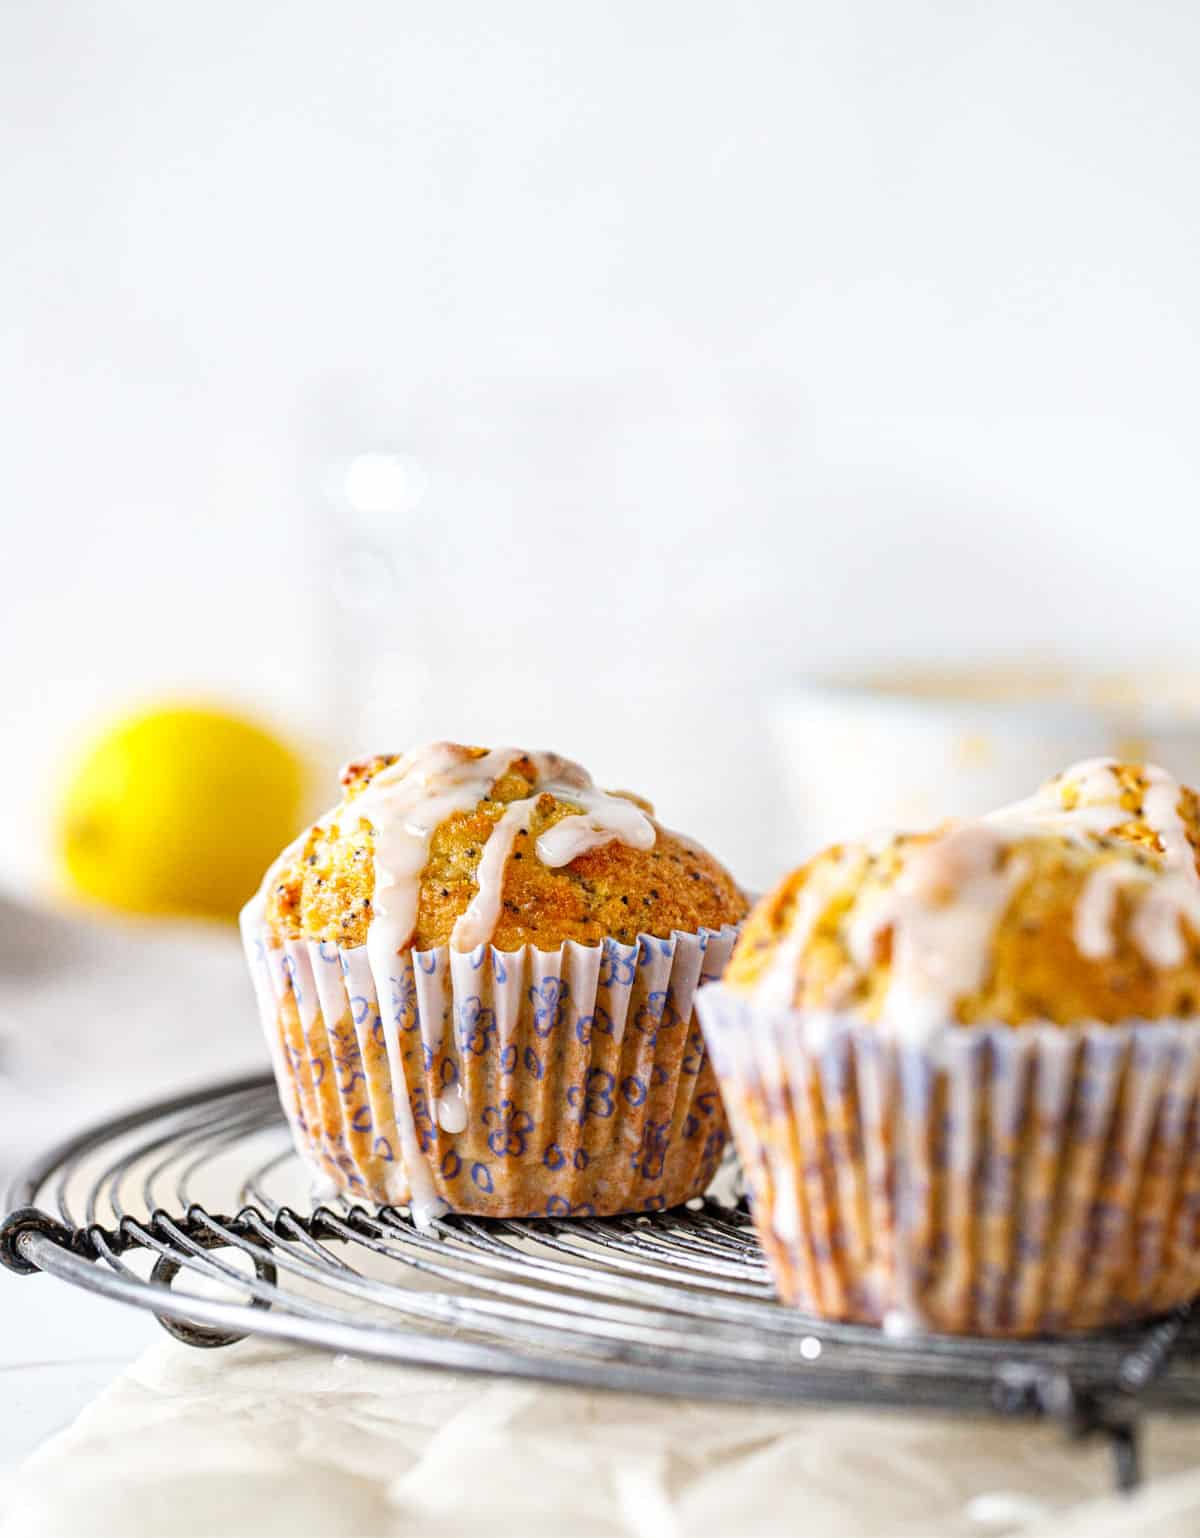 Two glazed lemon muffins on wire rack, a lemon in white background